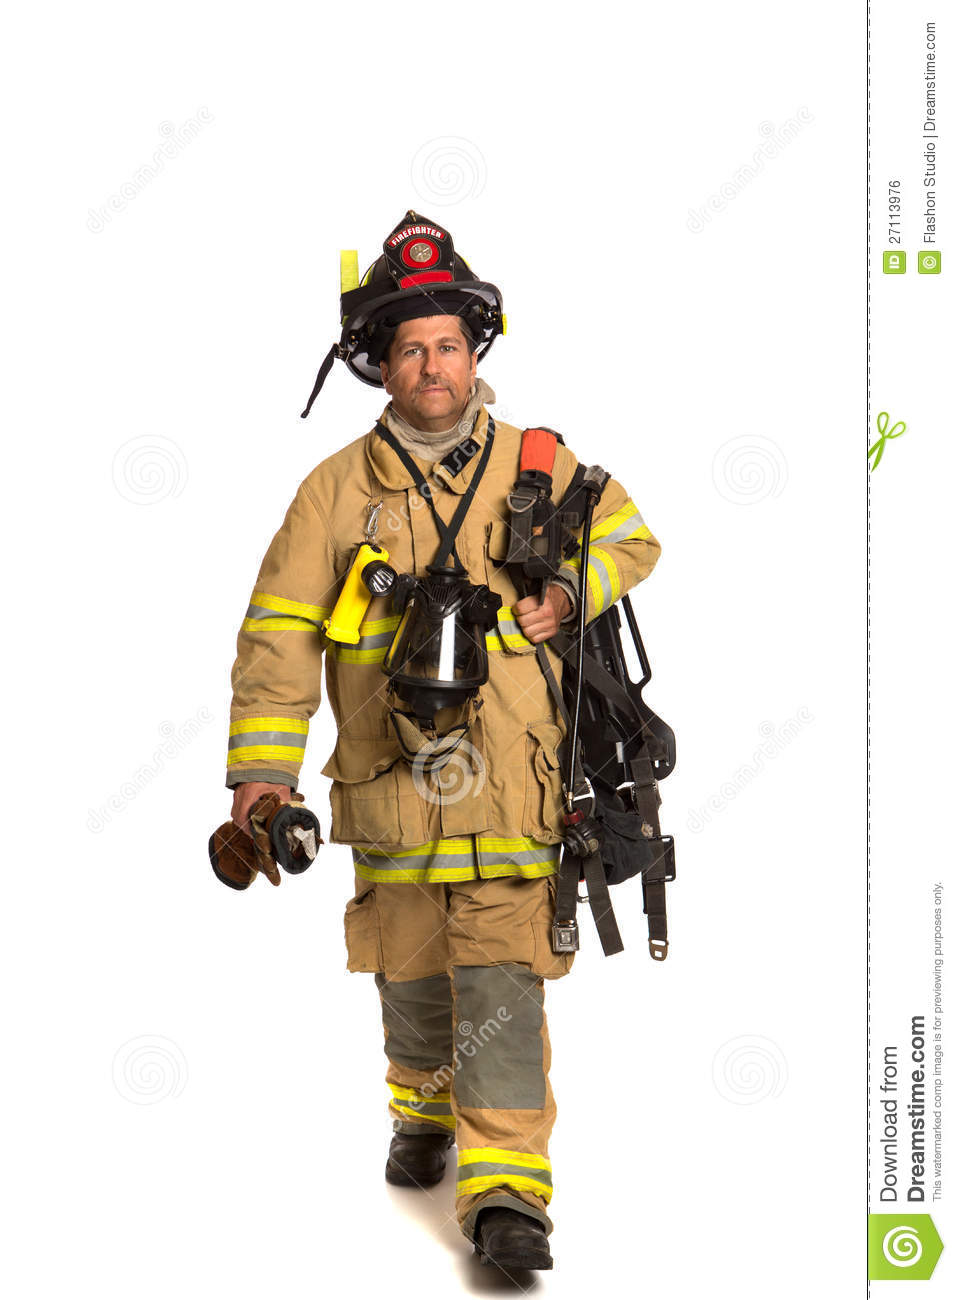 firefighter mask airpack protective suit royalty free lifeguard clipart images lifeguard clipart free